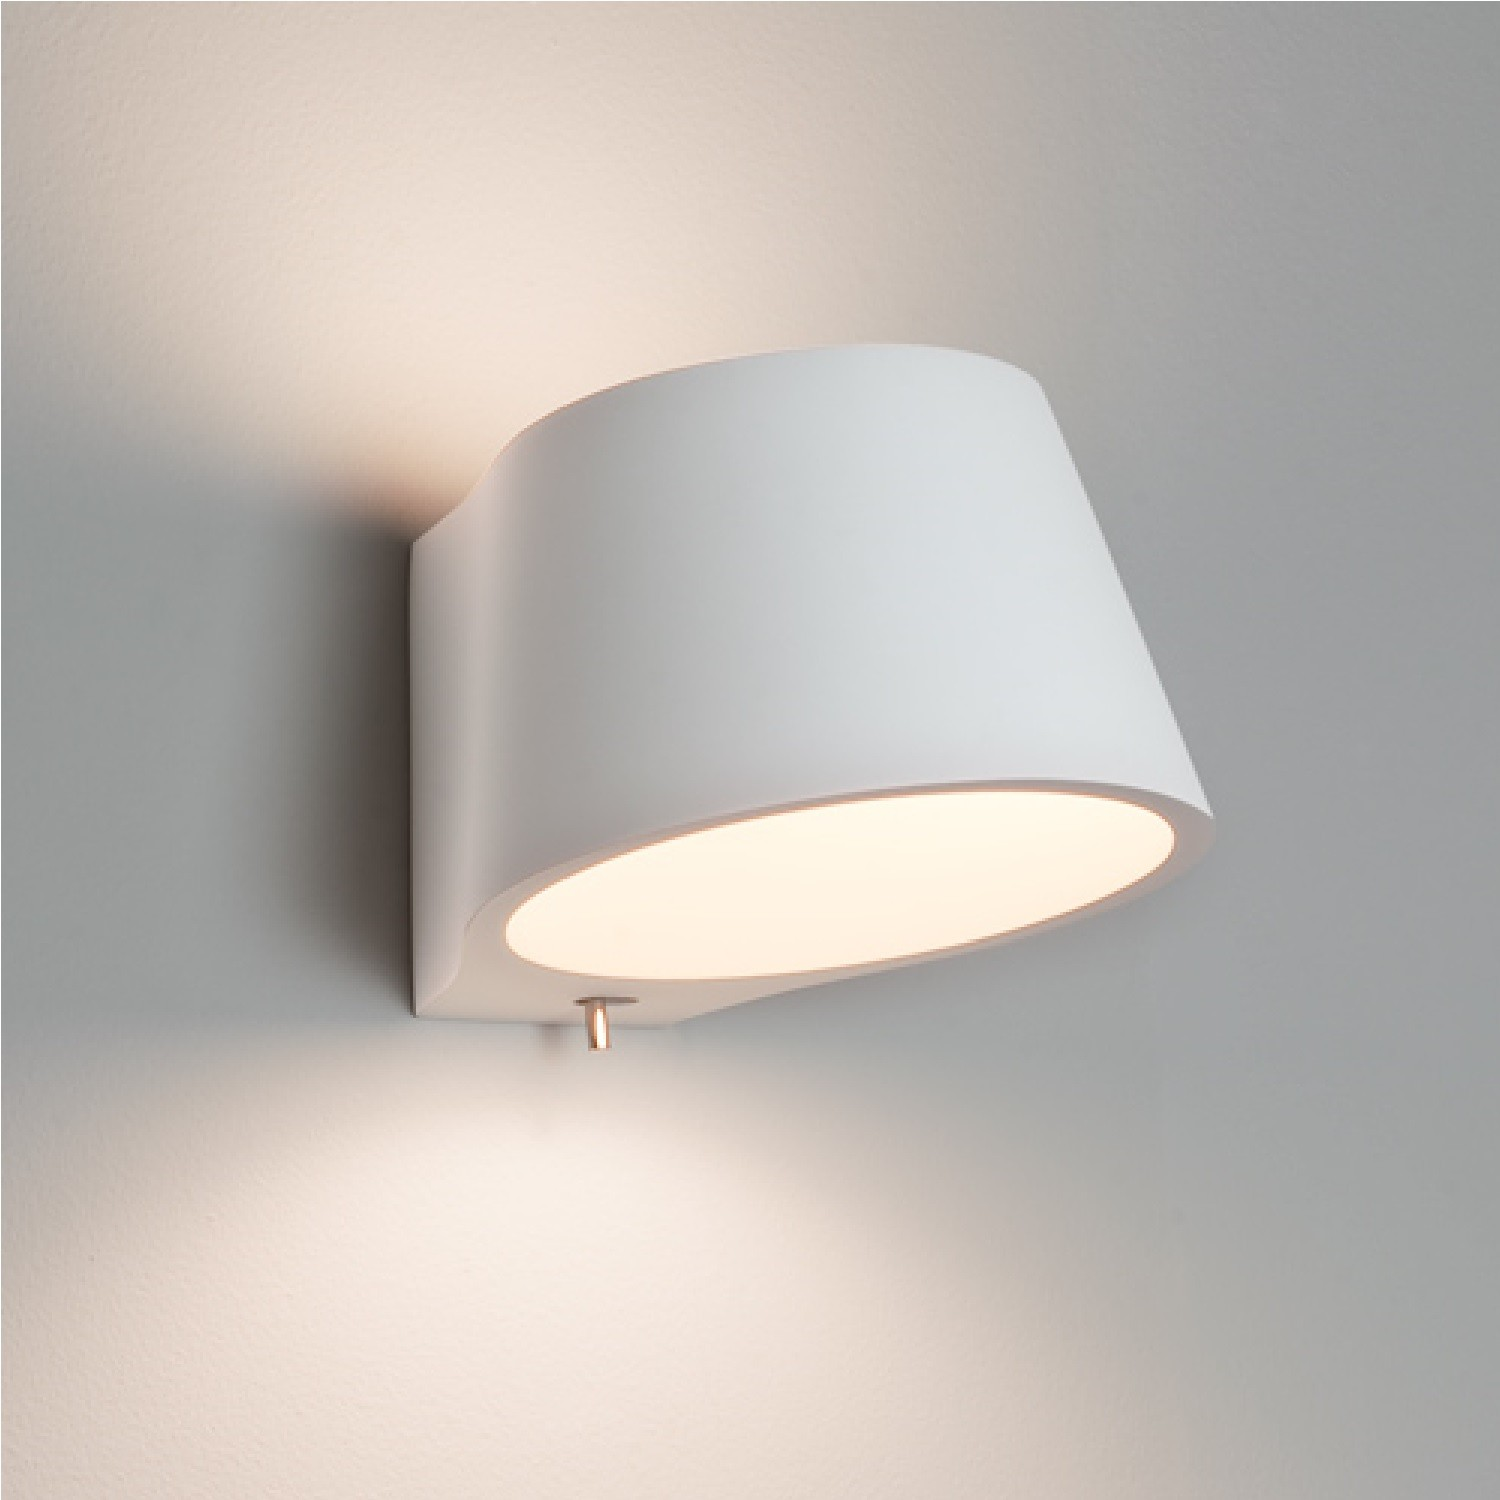 Zotta Design Wall Lamp With Switch